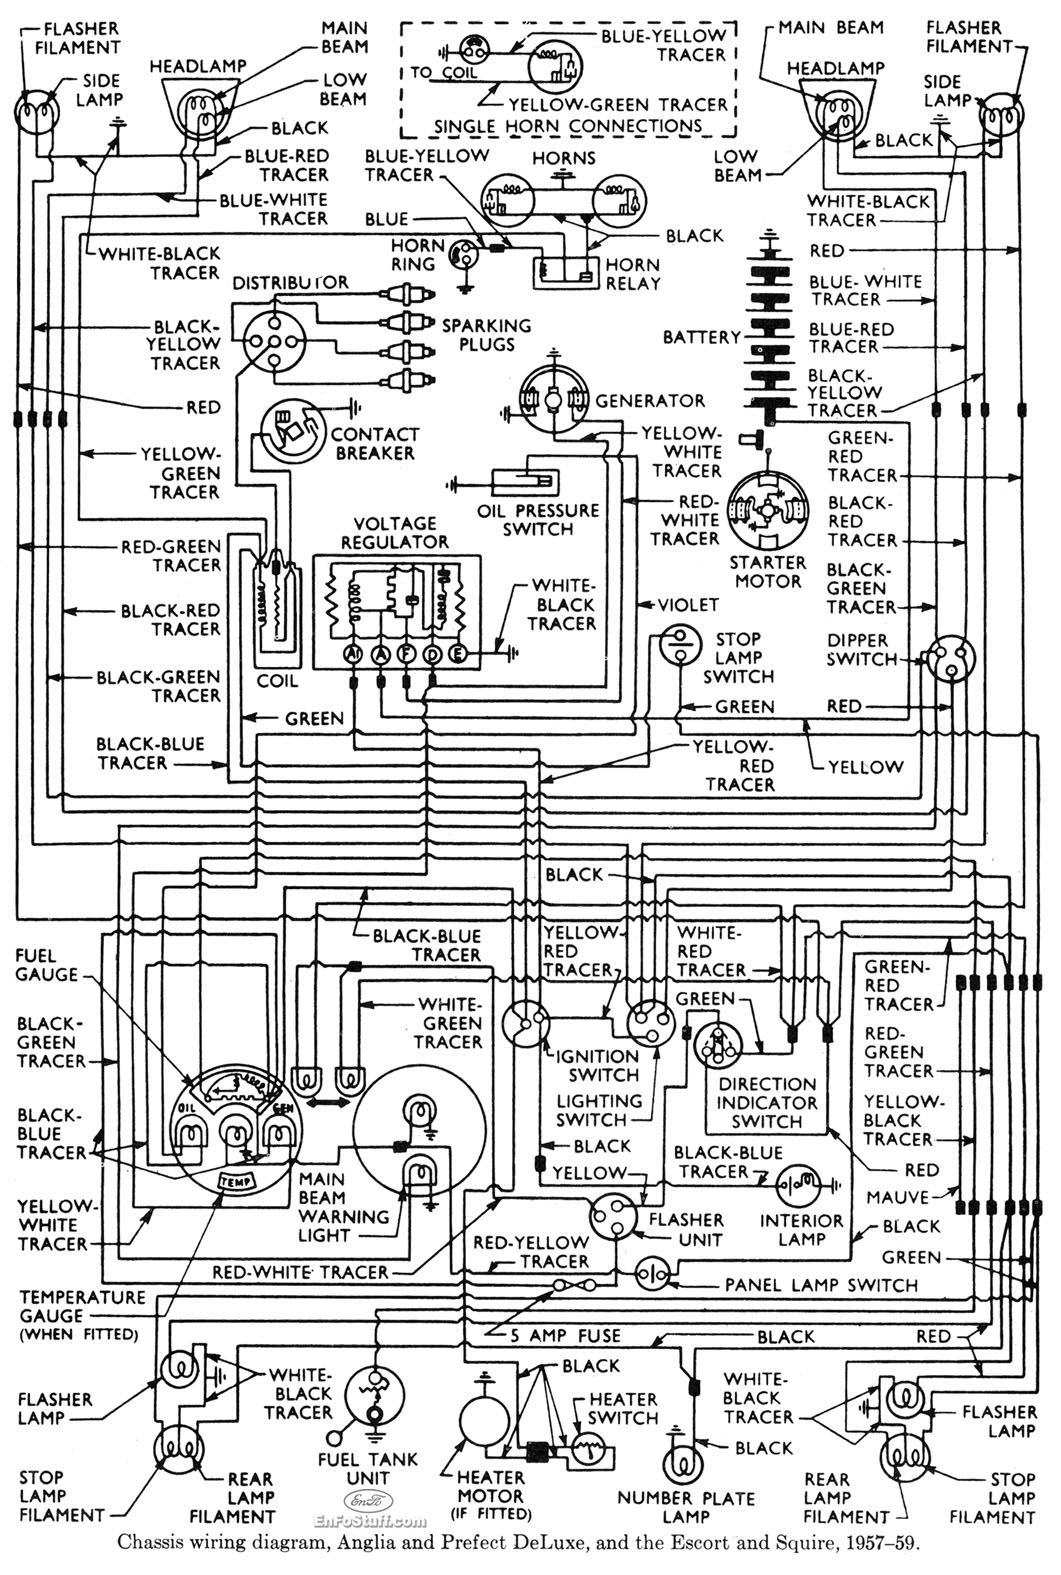 ford anglia prefect escort squire 1957 59 wiring diagram 1955 electrical wiring schematic suppliment 110 41 5 readingrat net 1957 ford wiring diagram at reclaimingppi.co